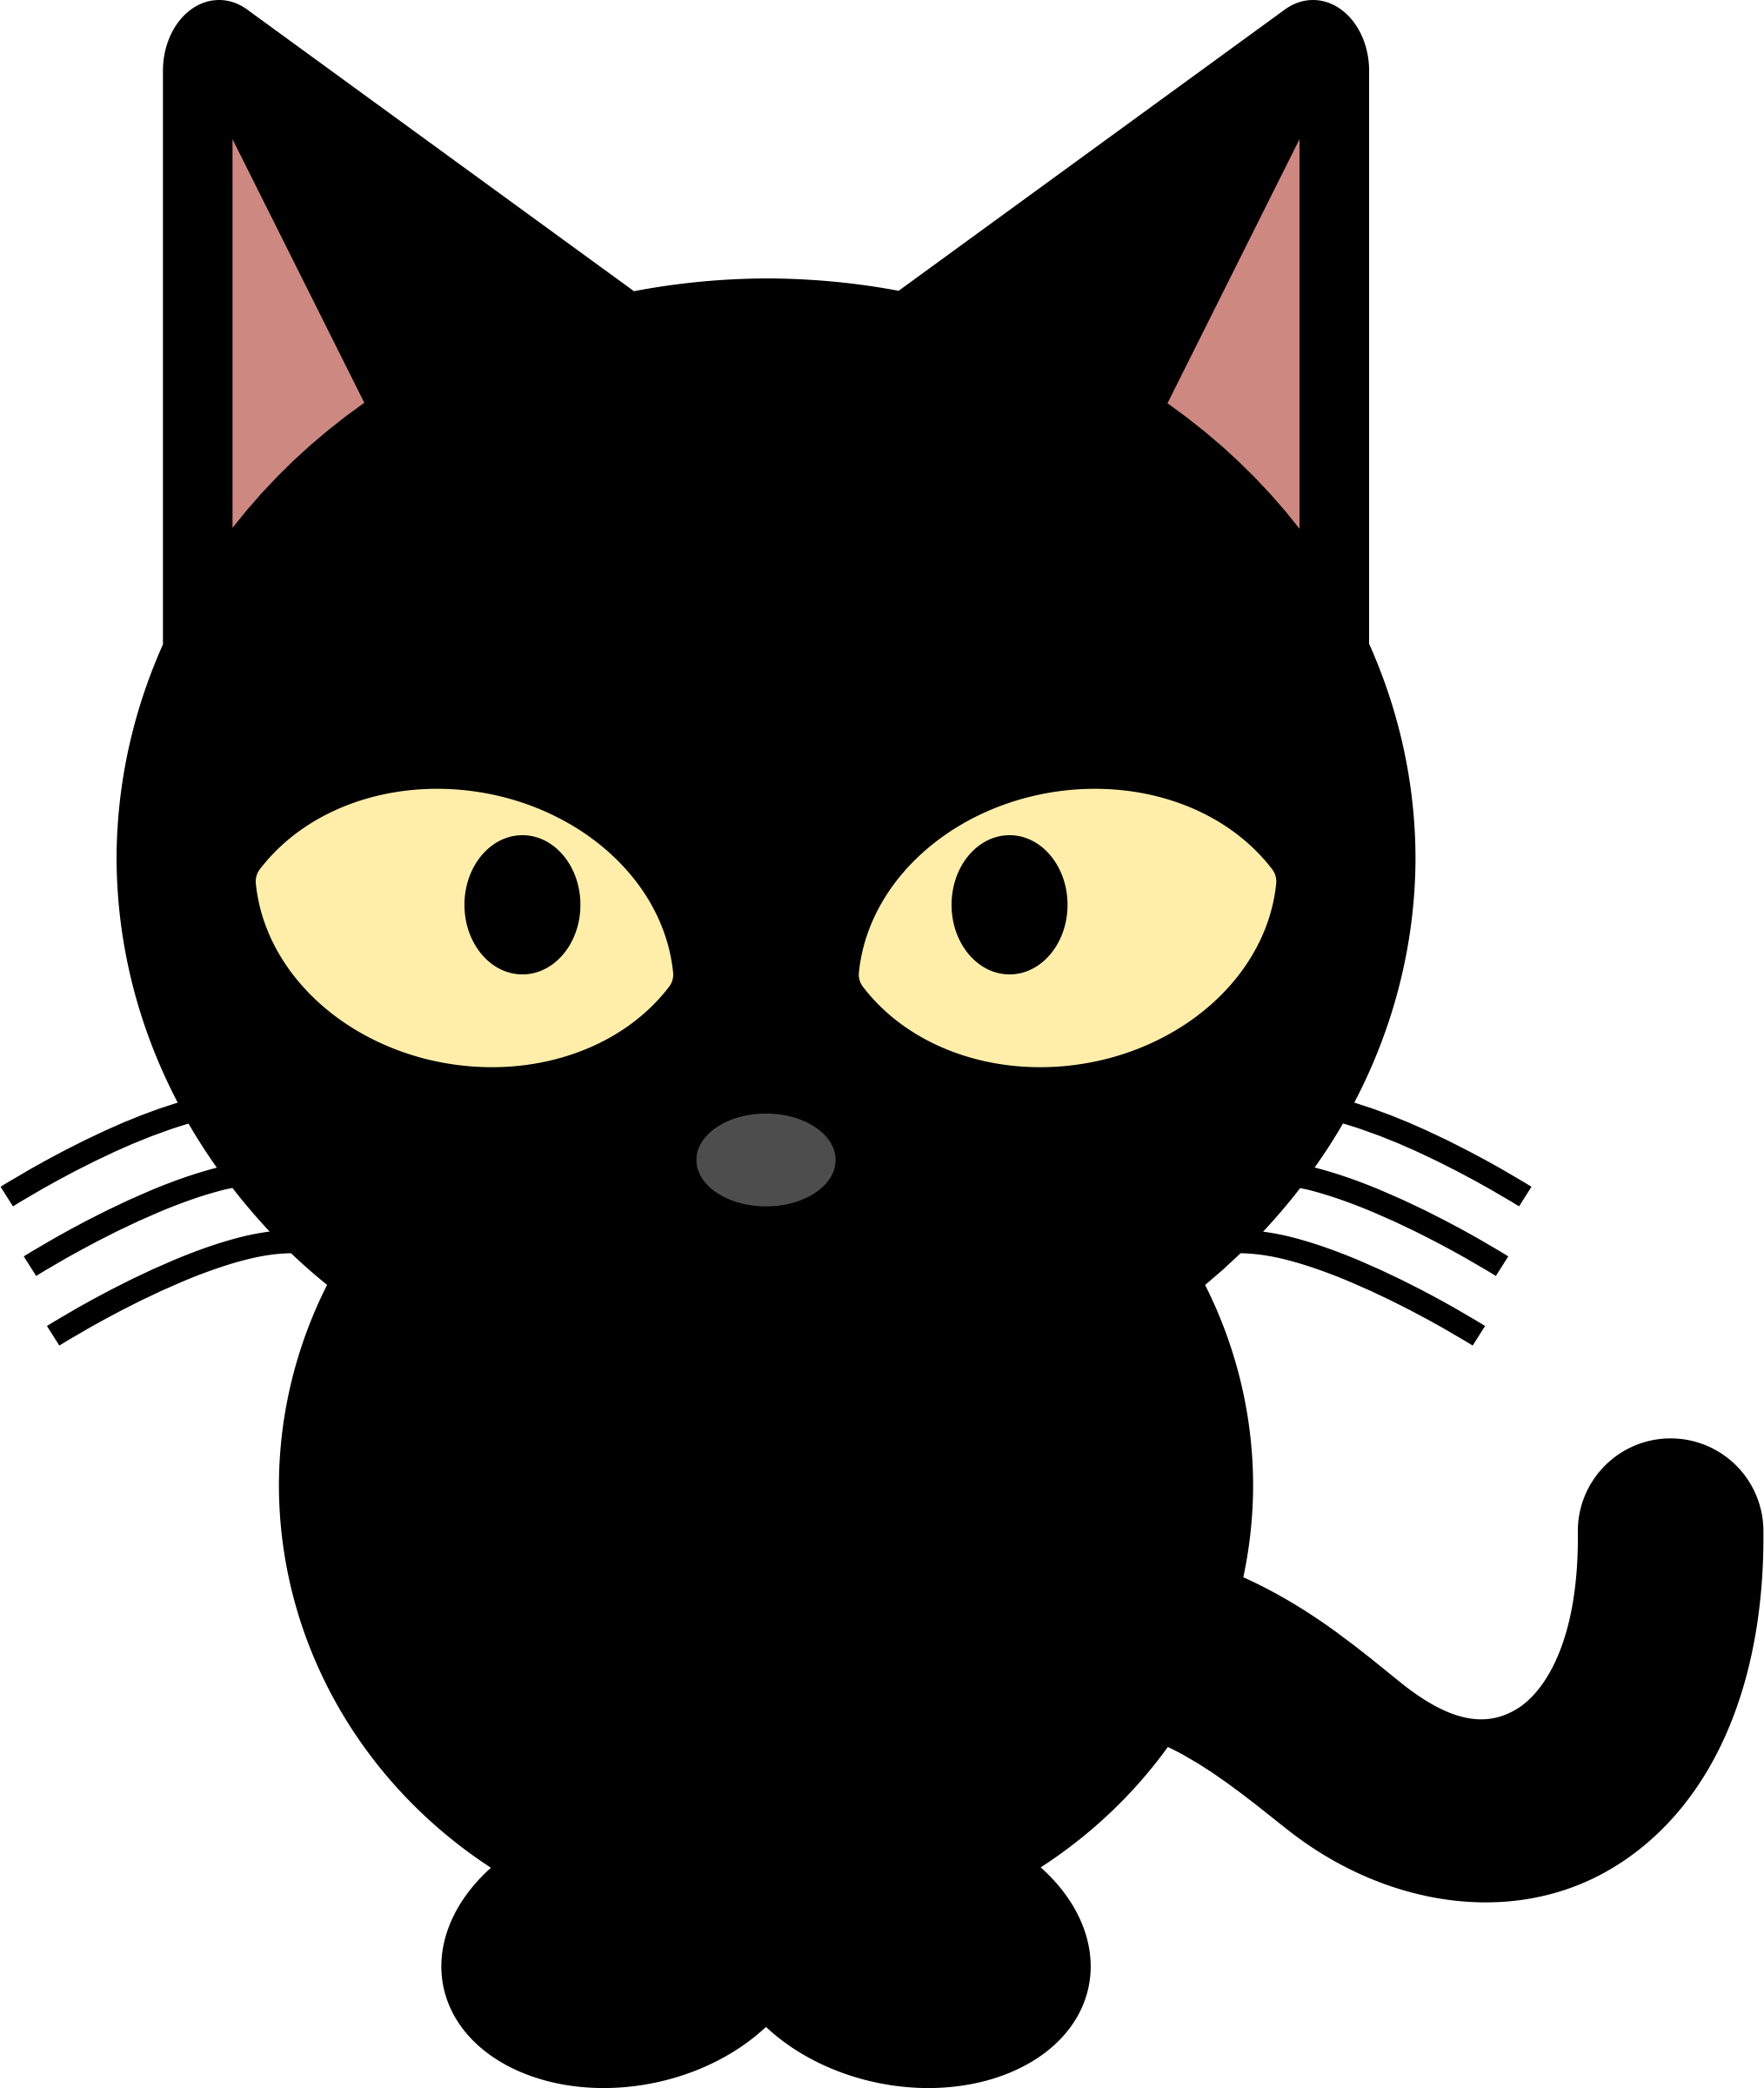 Kawaii clipart kitten. Kittens farm cat free